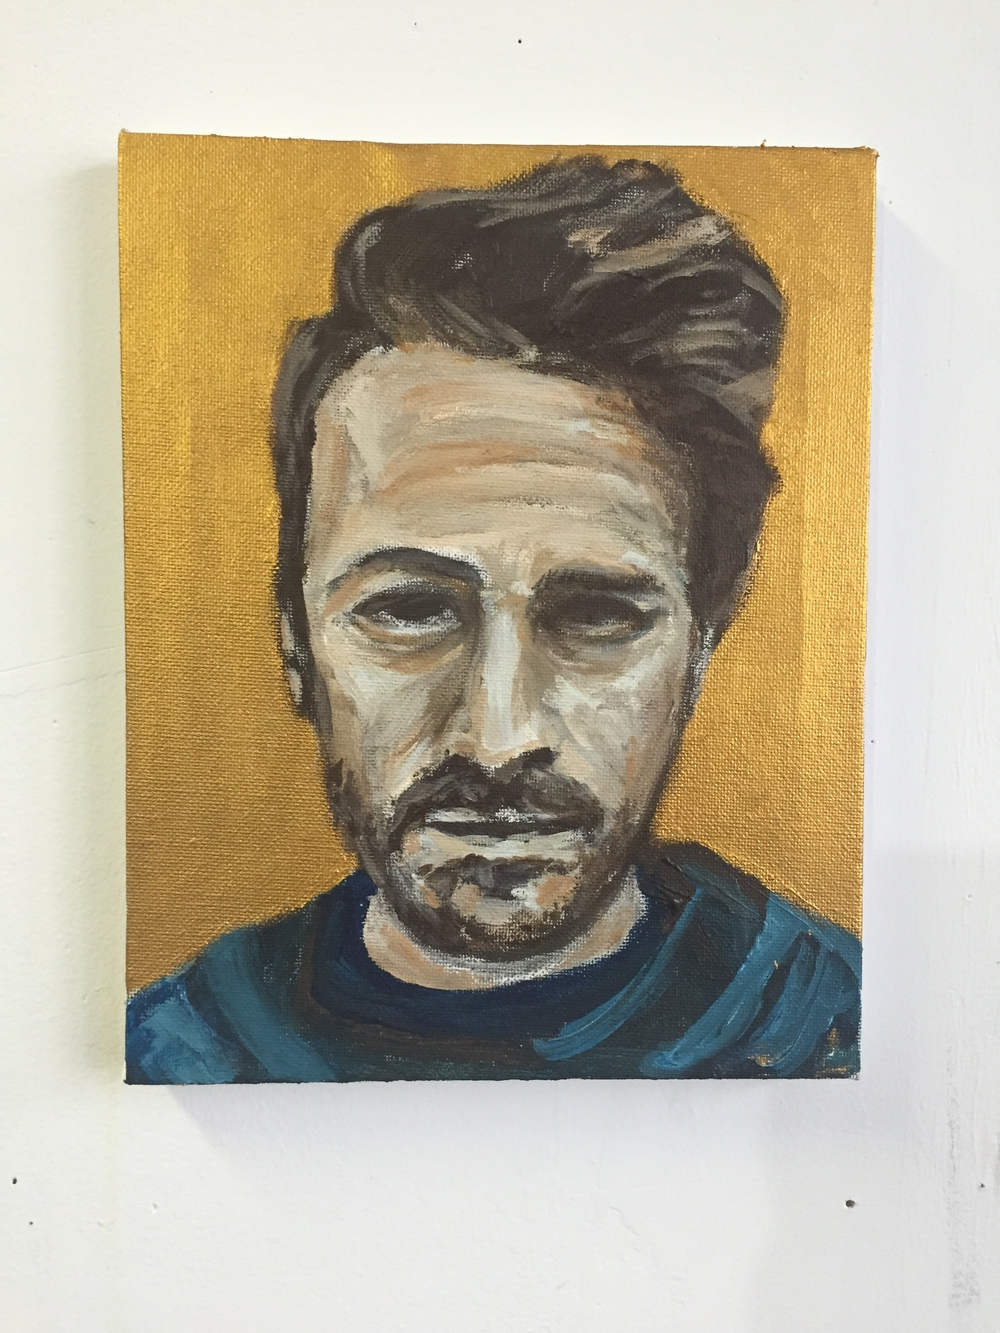 #500, Self Portrait.  Acrylic on Canvass